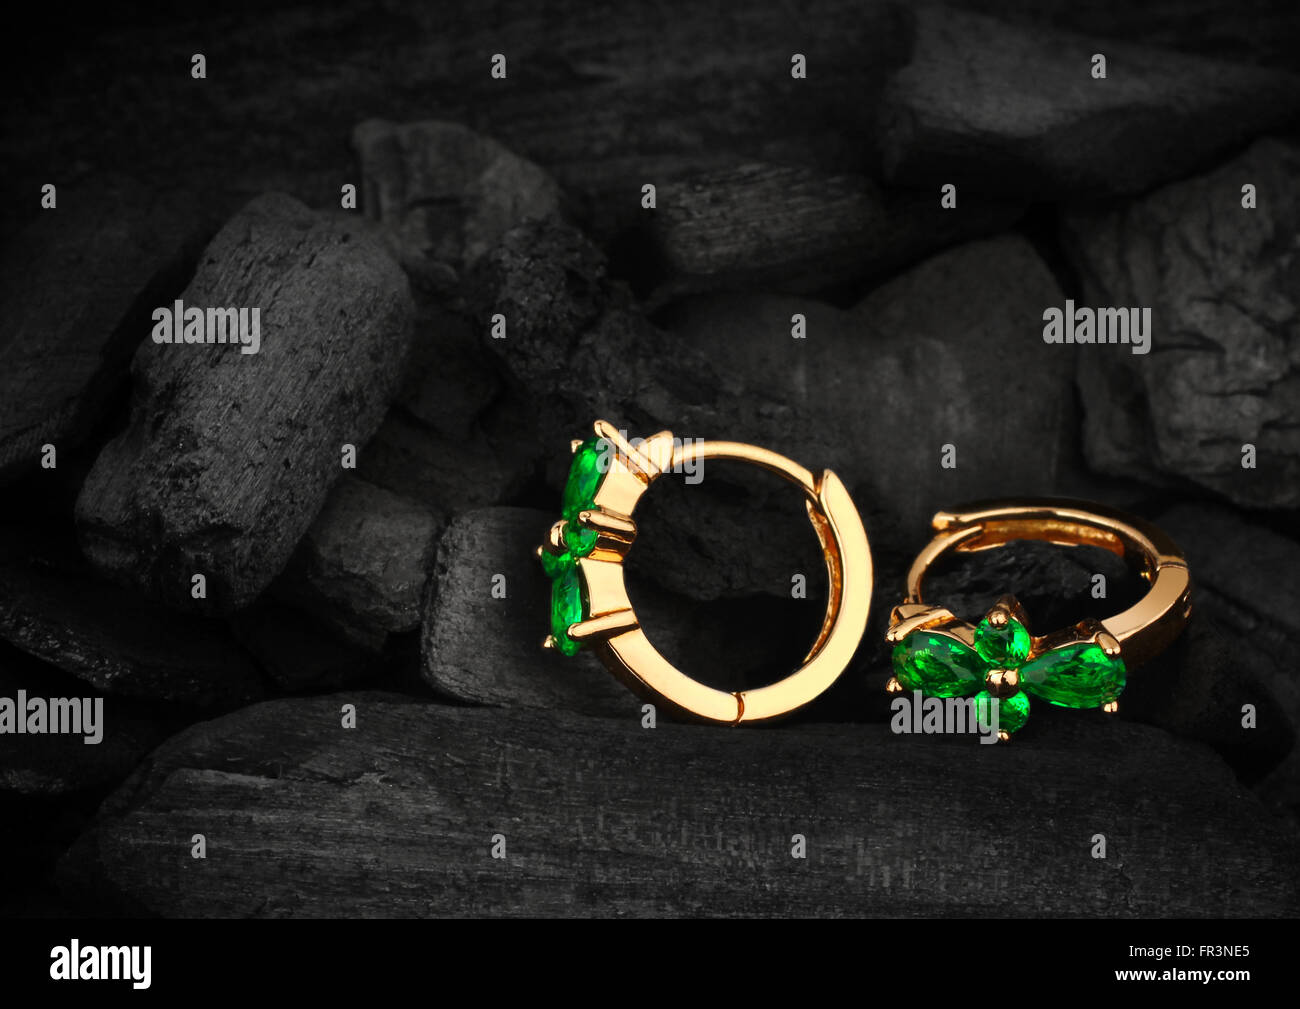 jewelry earring s witht gem emerald on dark coal background - Stock Image